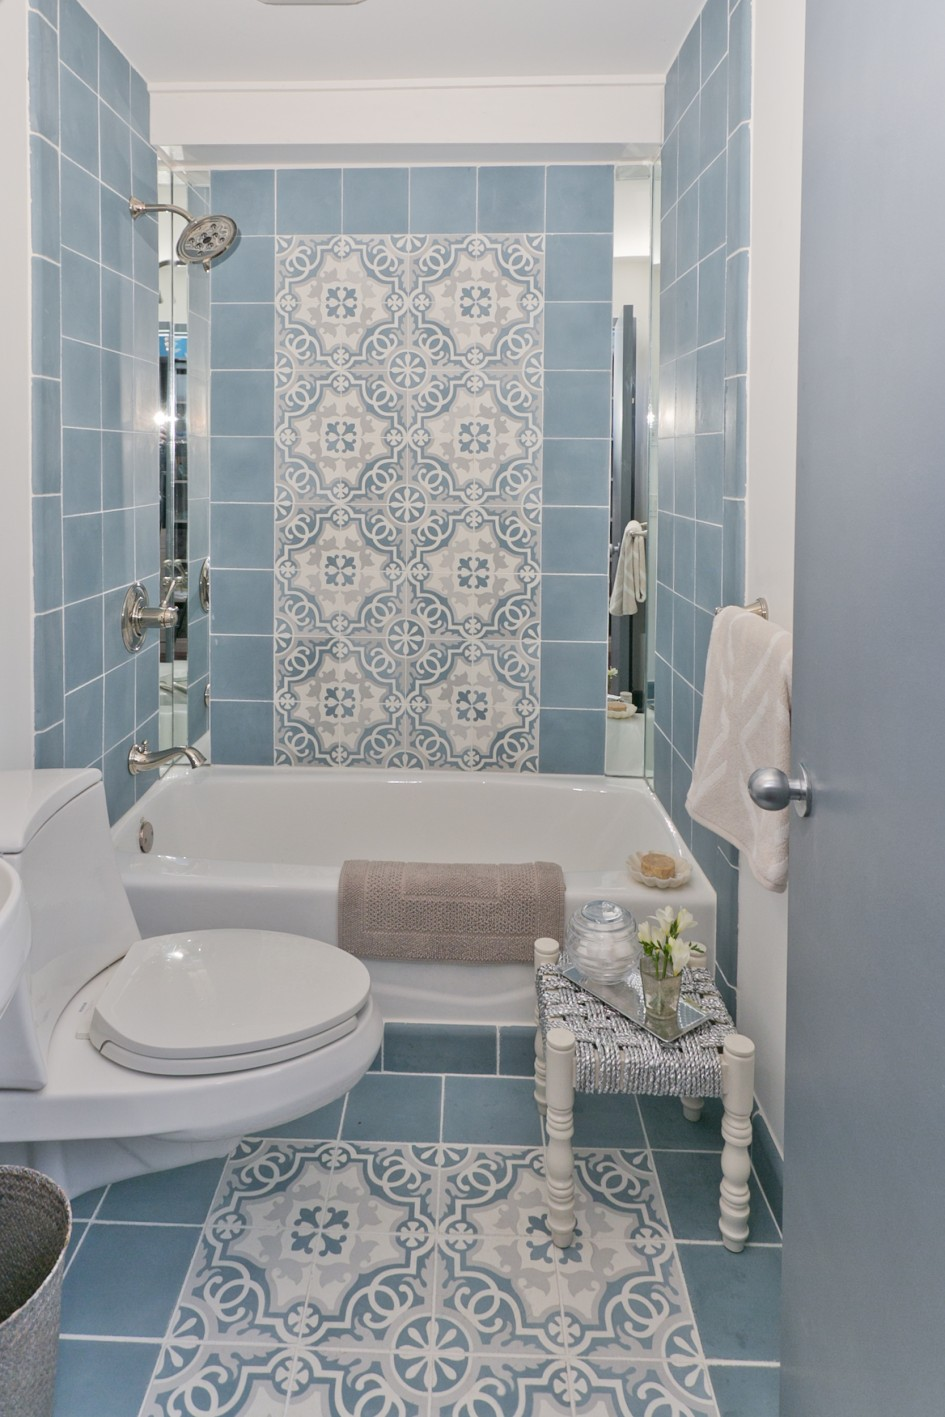 40 vintage blue bathroom tiles ideas and pictures for Carrelage salle de bain bleu